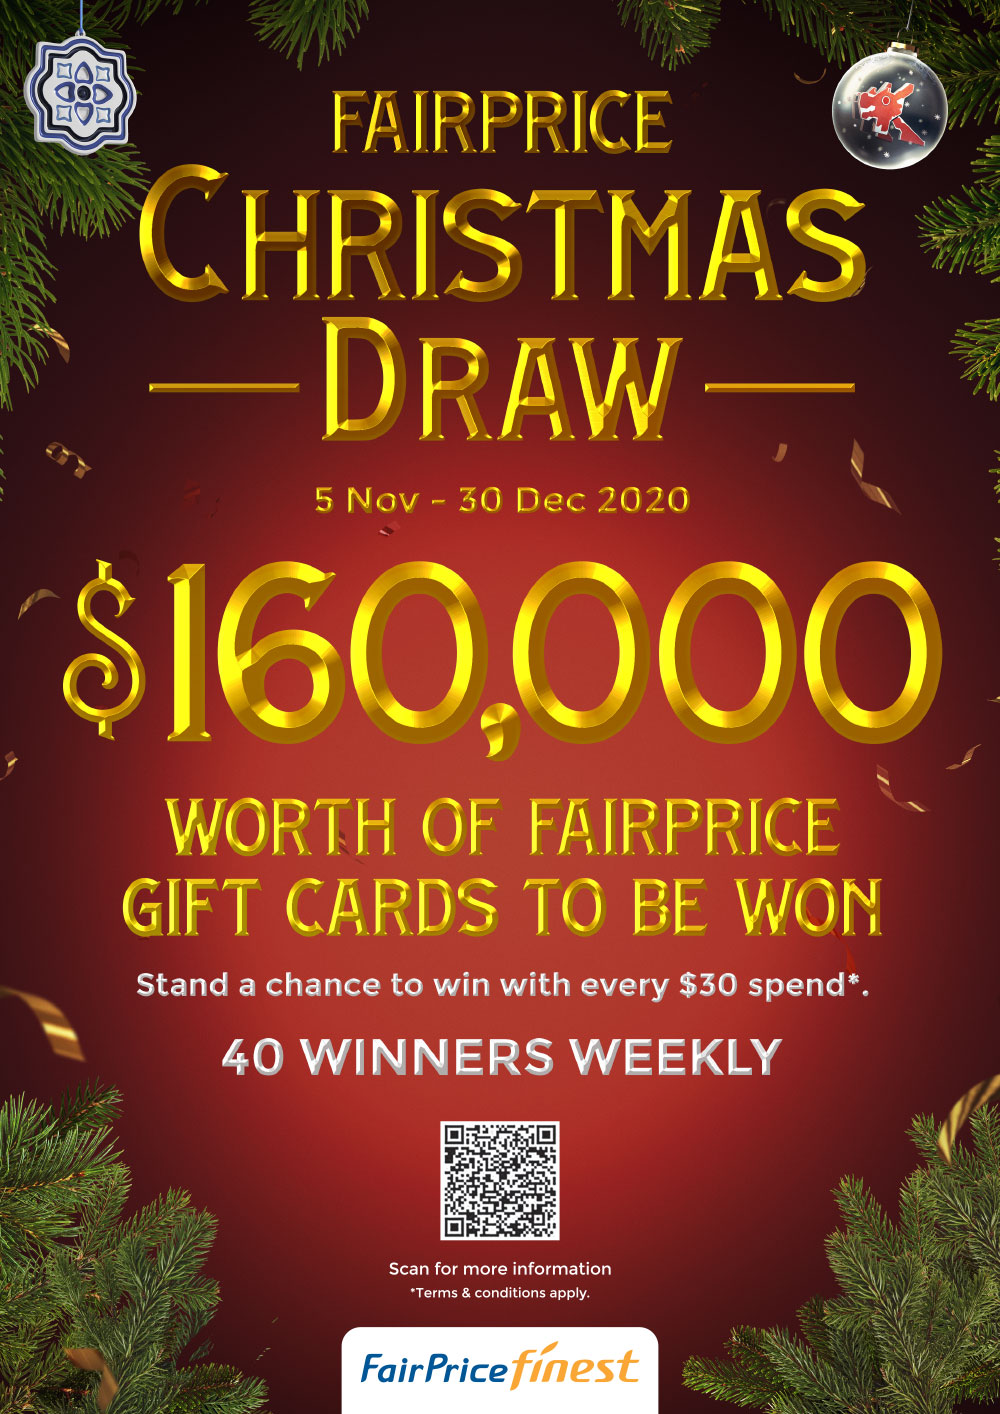 FairPrice Finest Christmas Catalogue 2020 - Christmas Draw